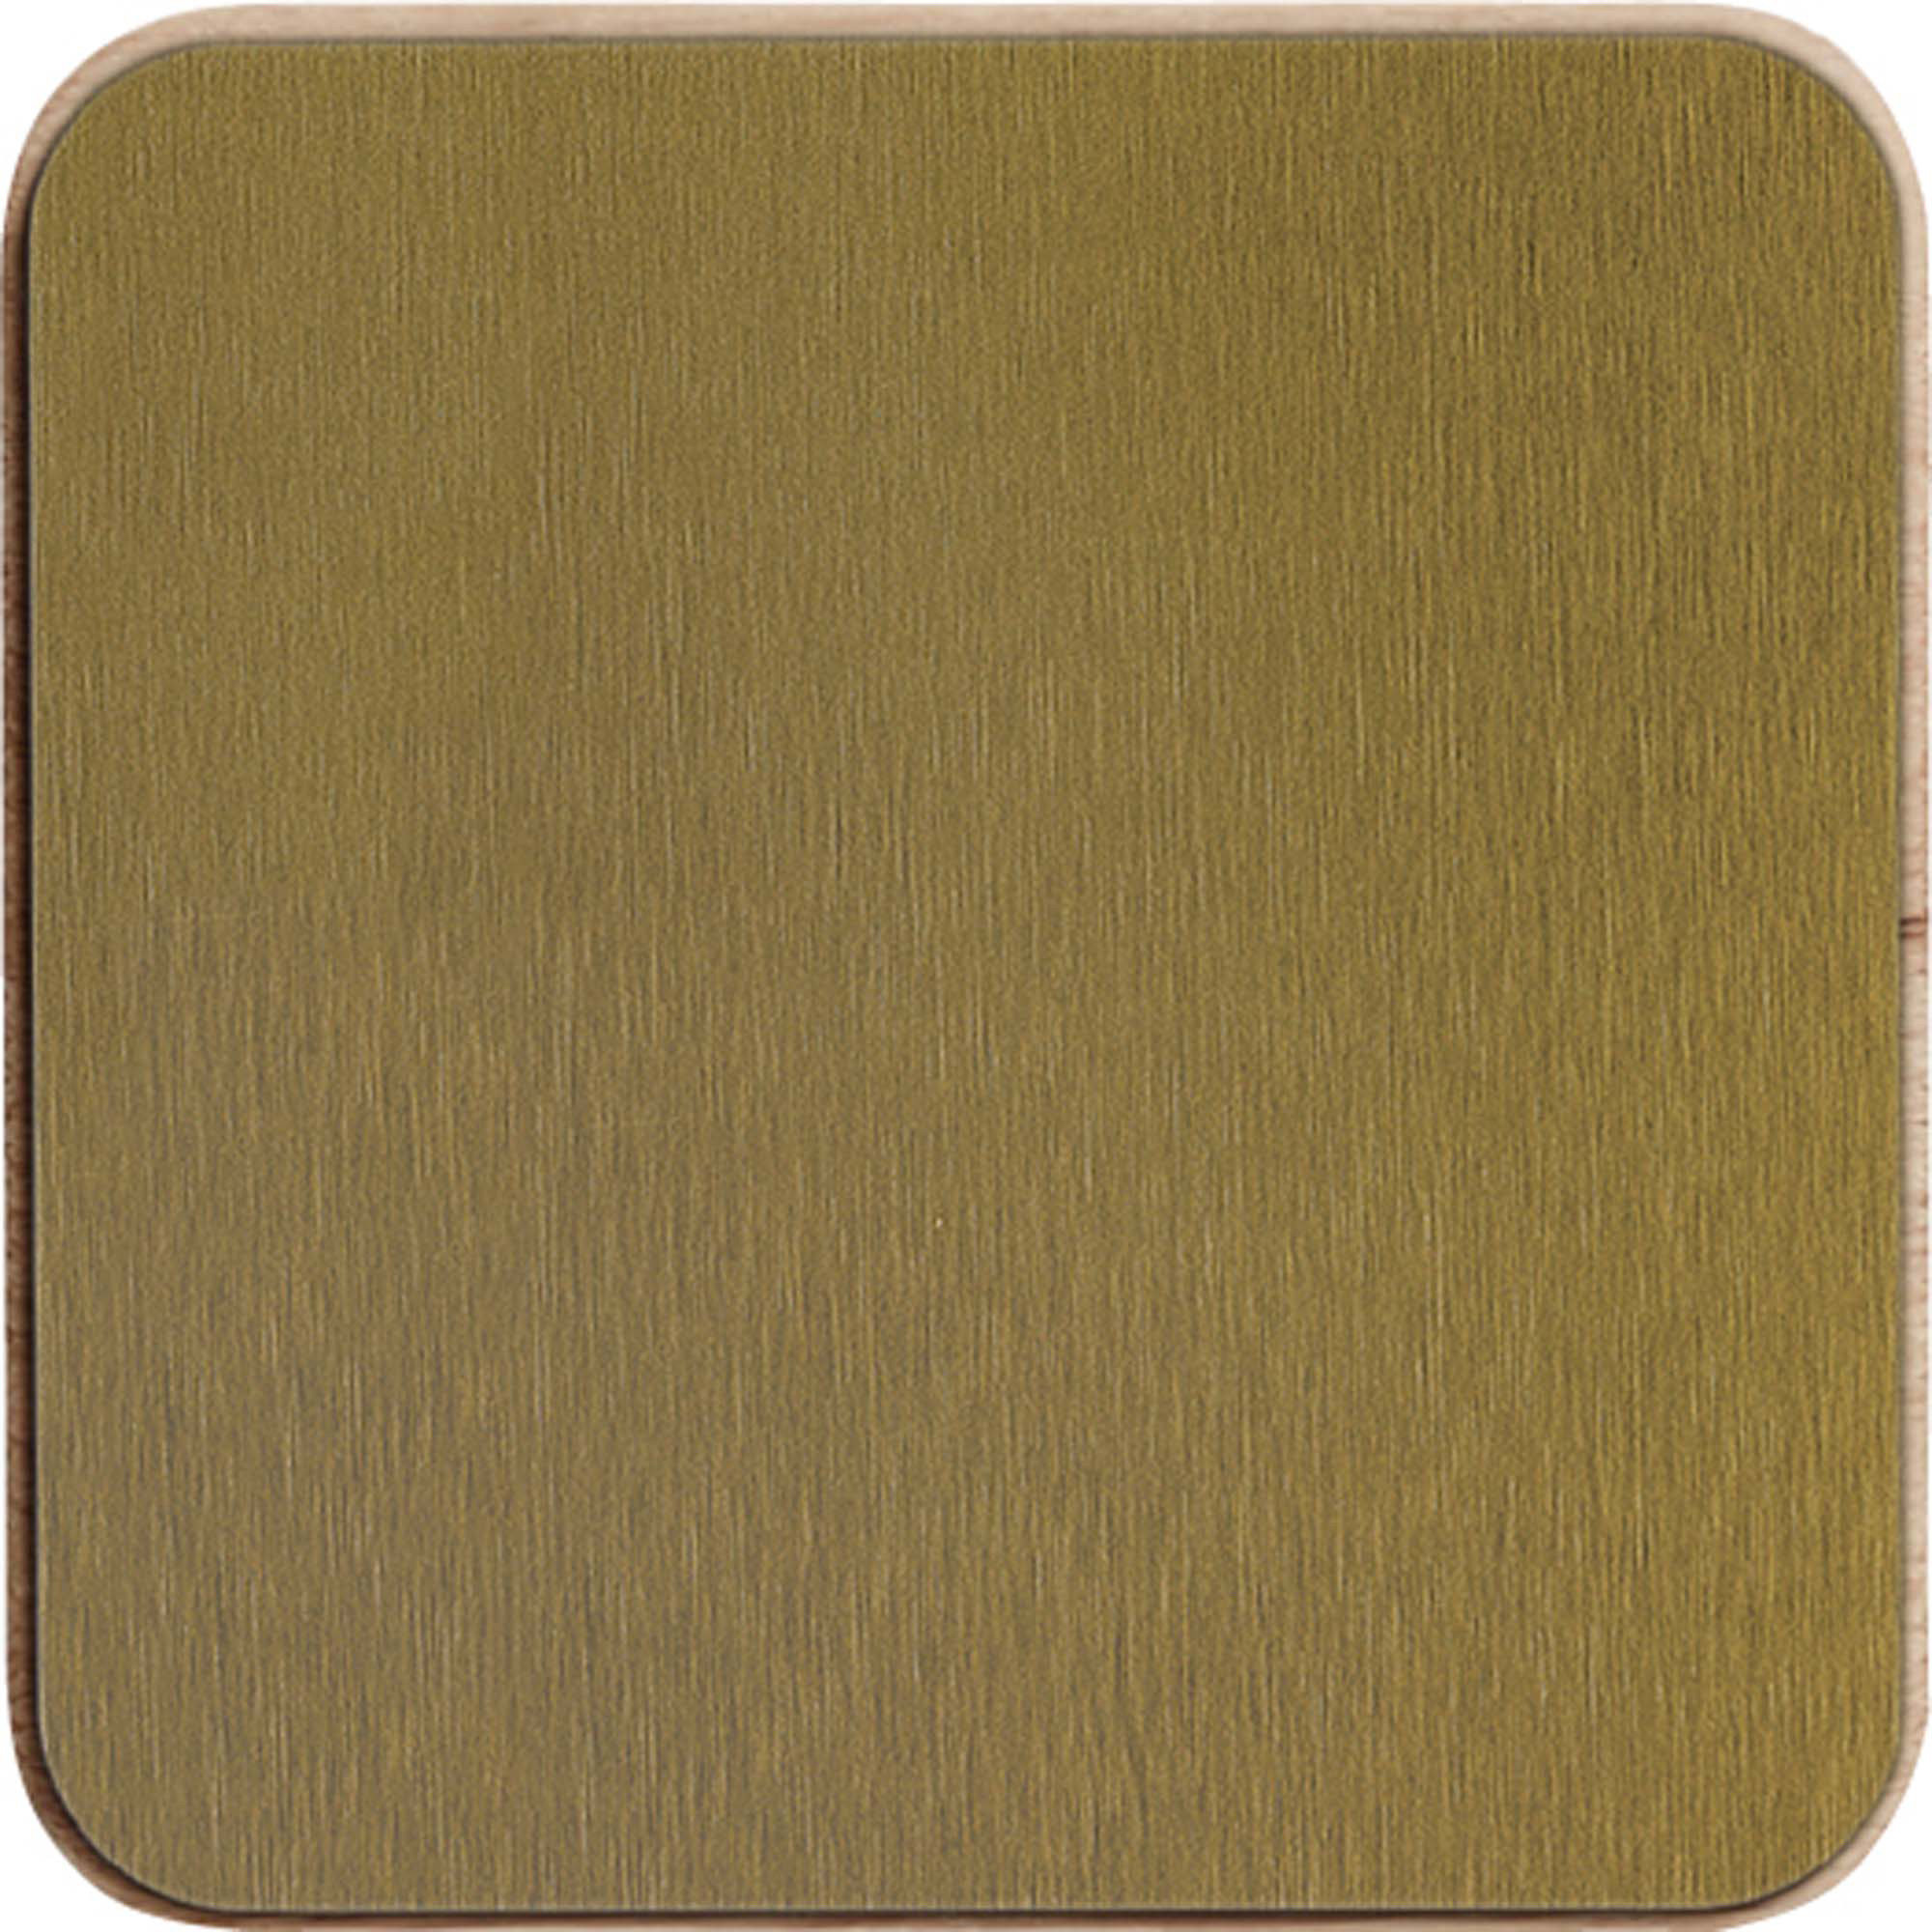 Bilde av Andersen Furniture Create Me Lokk 12 X 12 Brass